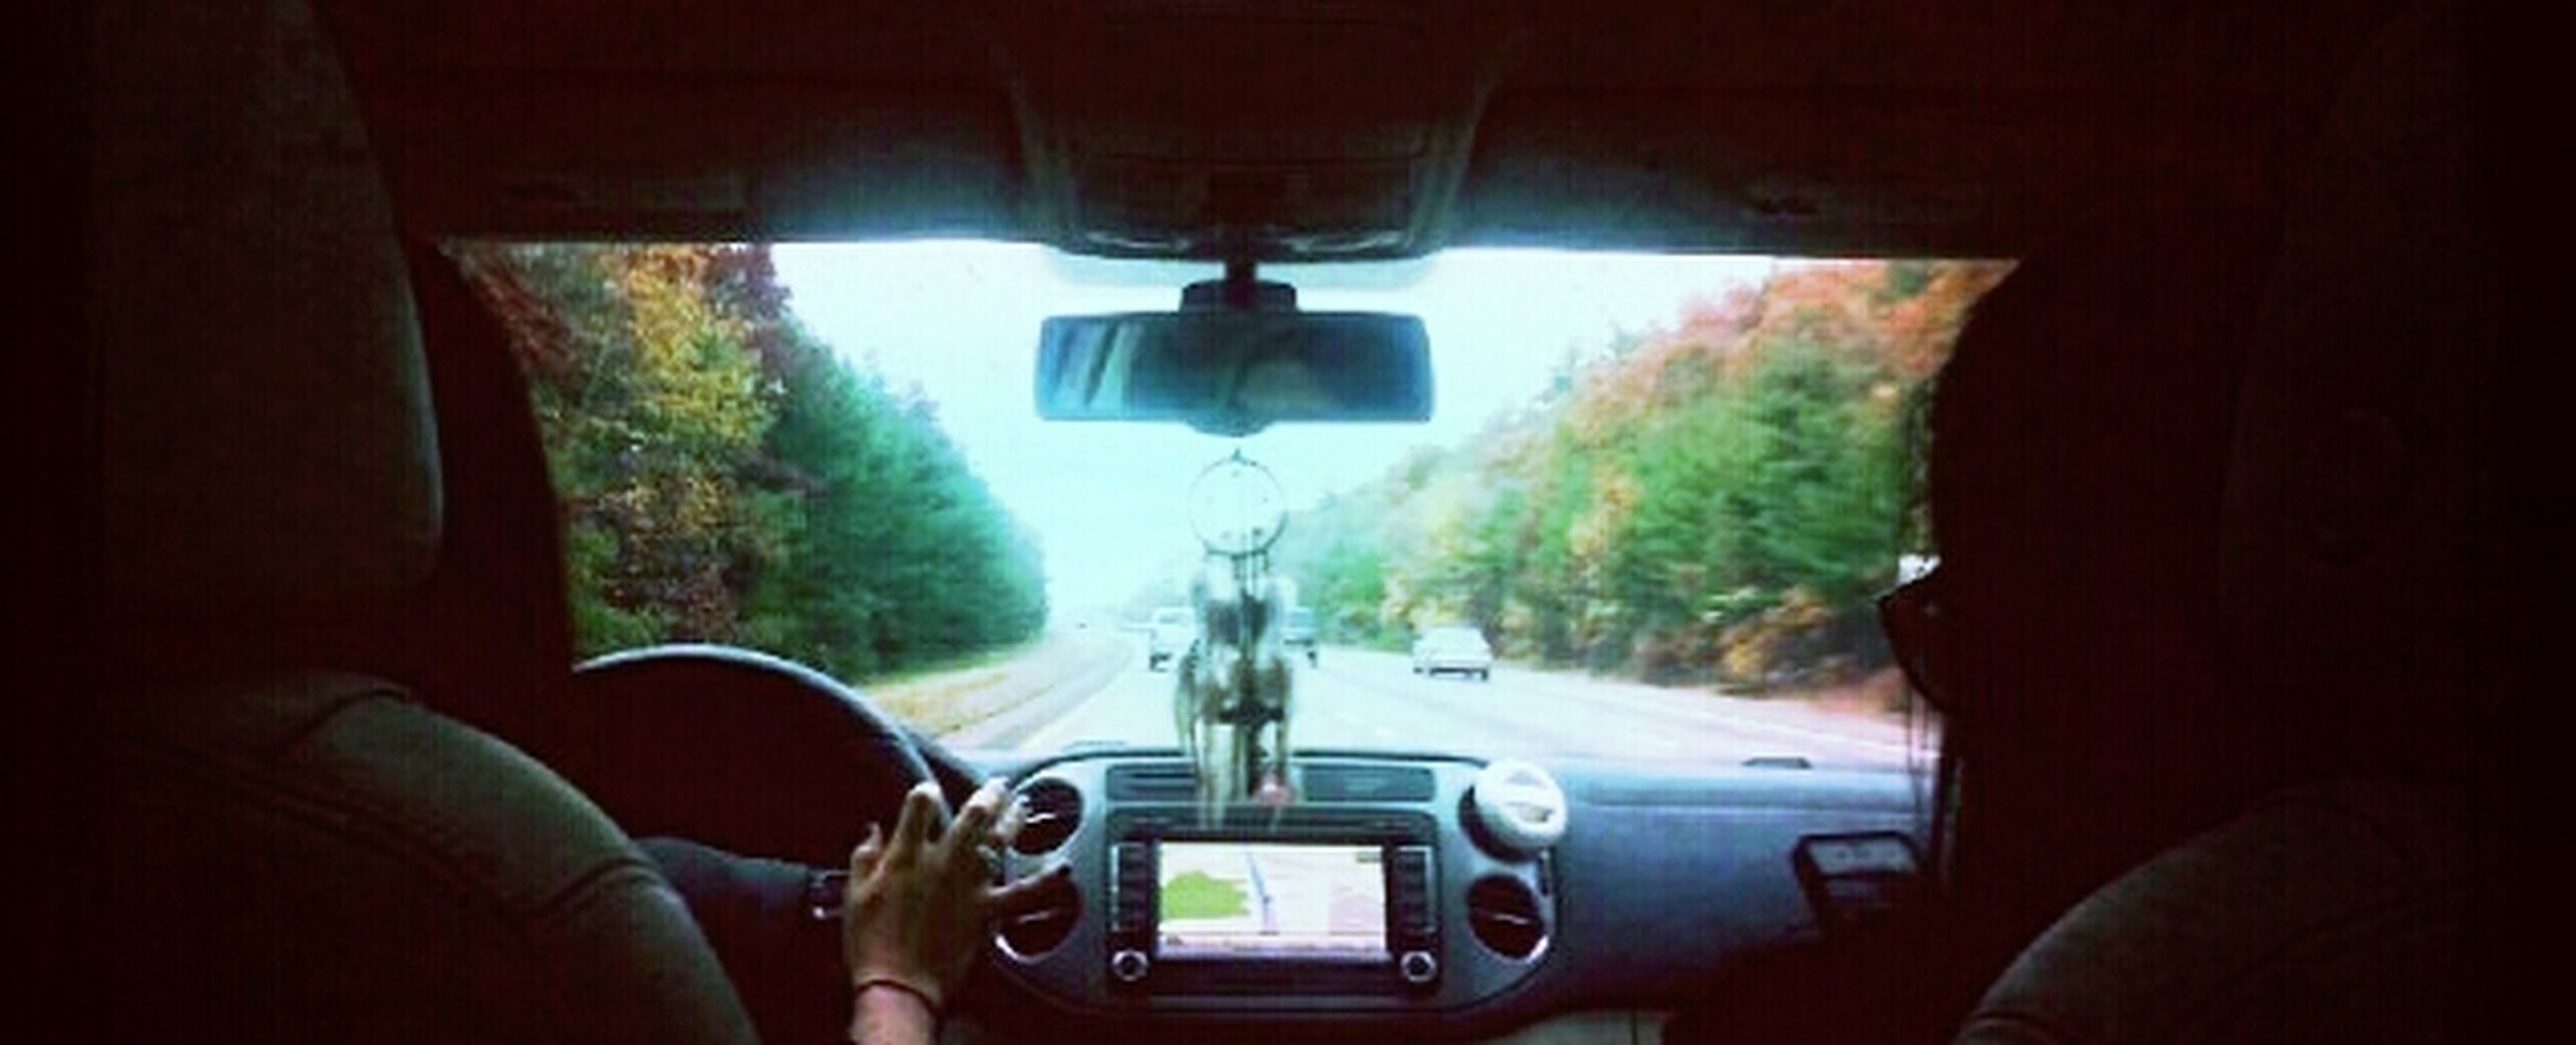 transportation, mode of transport, land vehicle, vehicle interior, men, car, lifestyles, travel, tree, indoors, leisure activity, rear view, on the move, windshield, car interior, journey, person, unrecognizable person